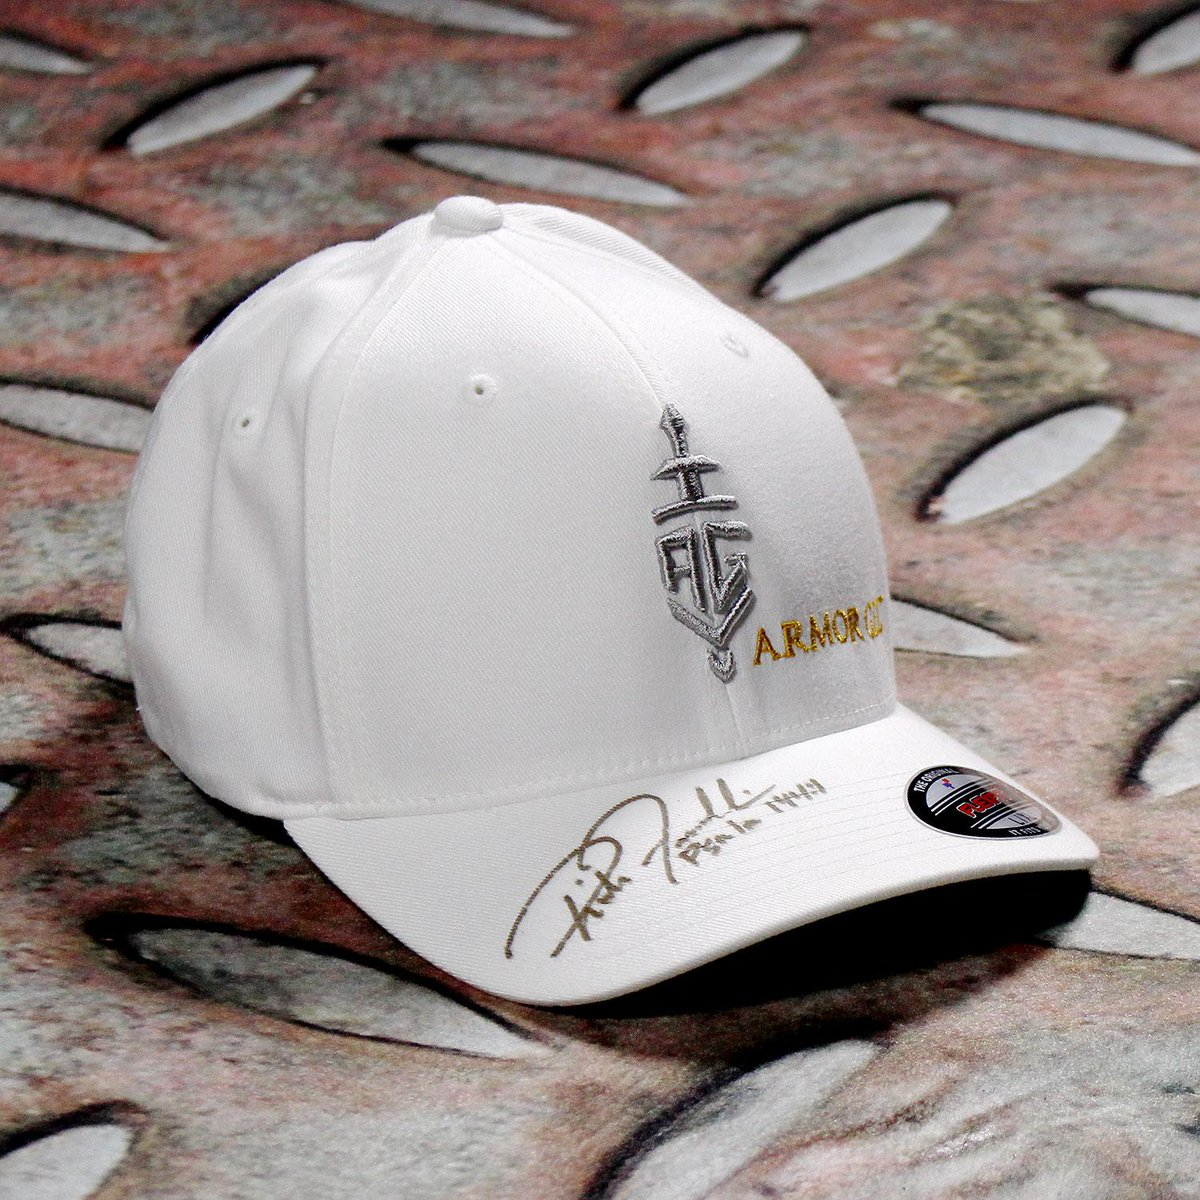 Thanks @RichFranklin for an amazing career! Fans- RT this for a chance to win this @ArmorGel hat signed by Rich! http://t.co/ckqMvY4c16